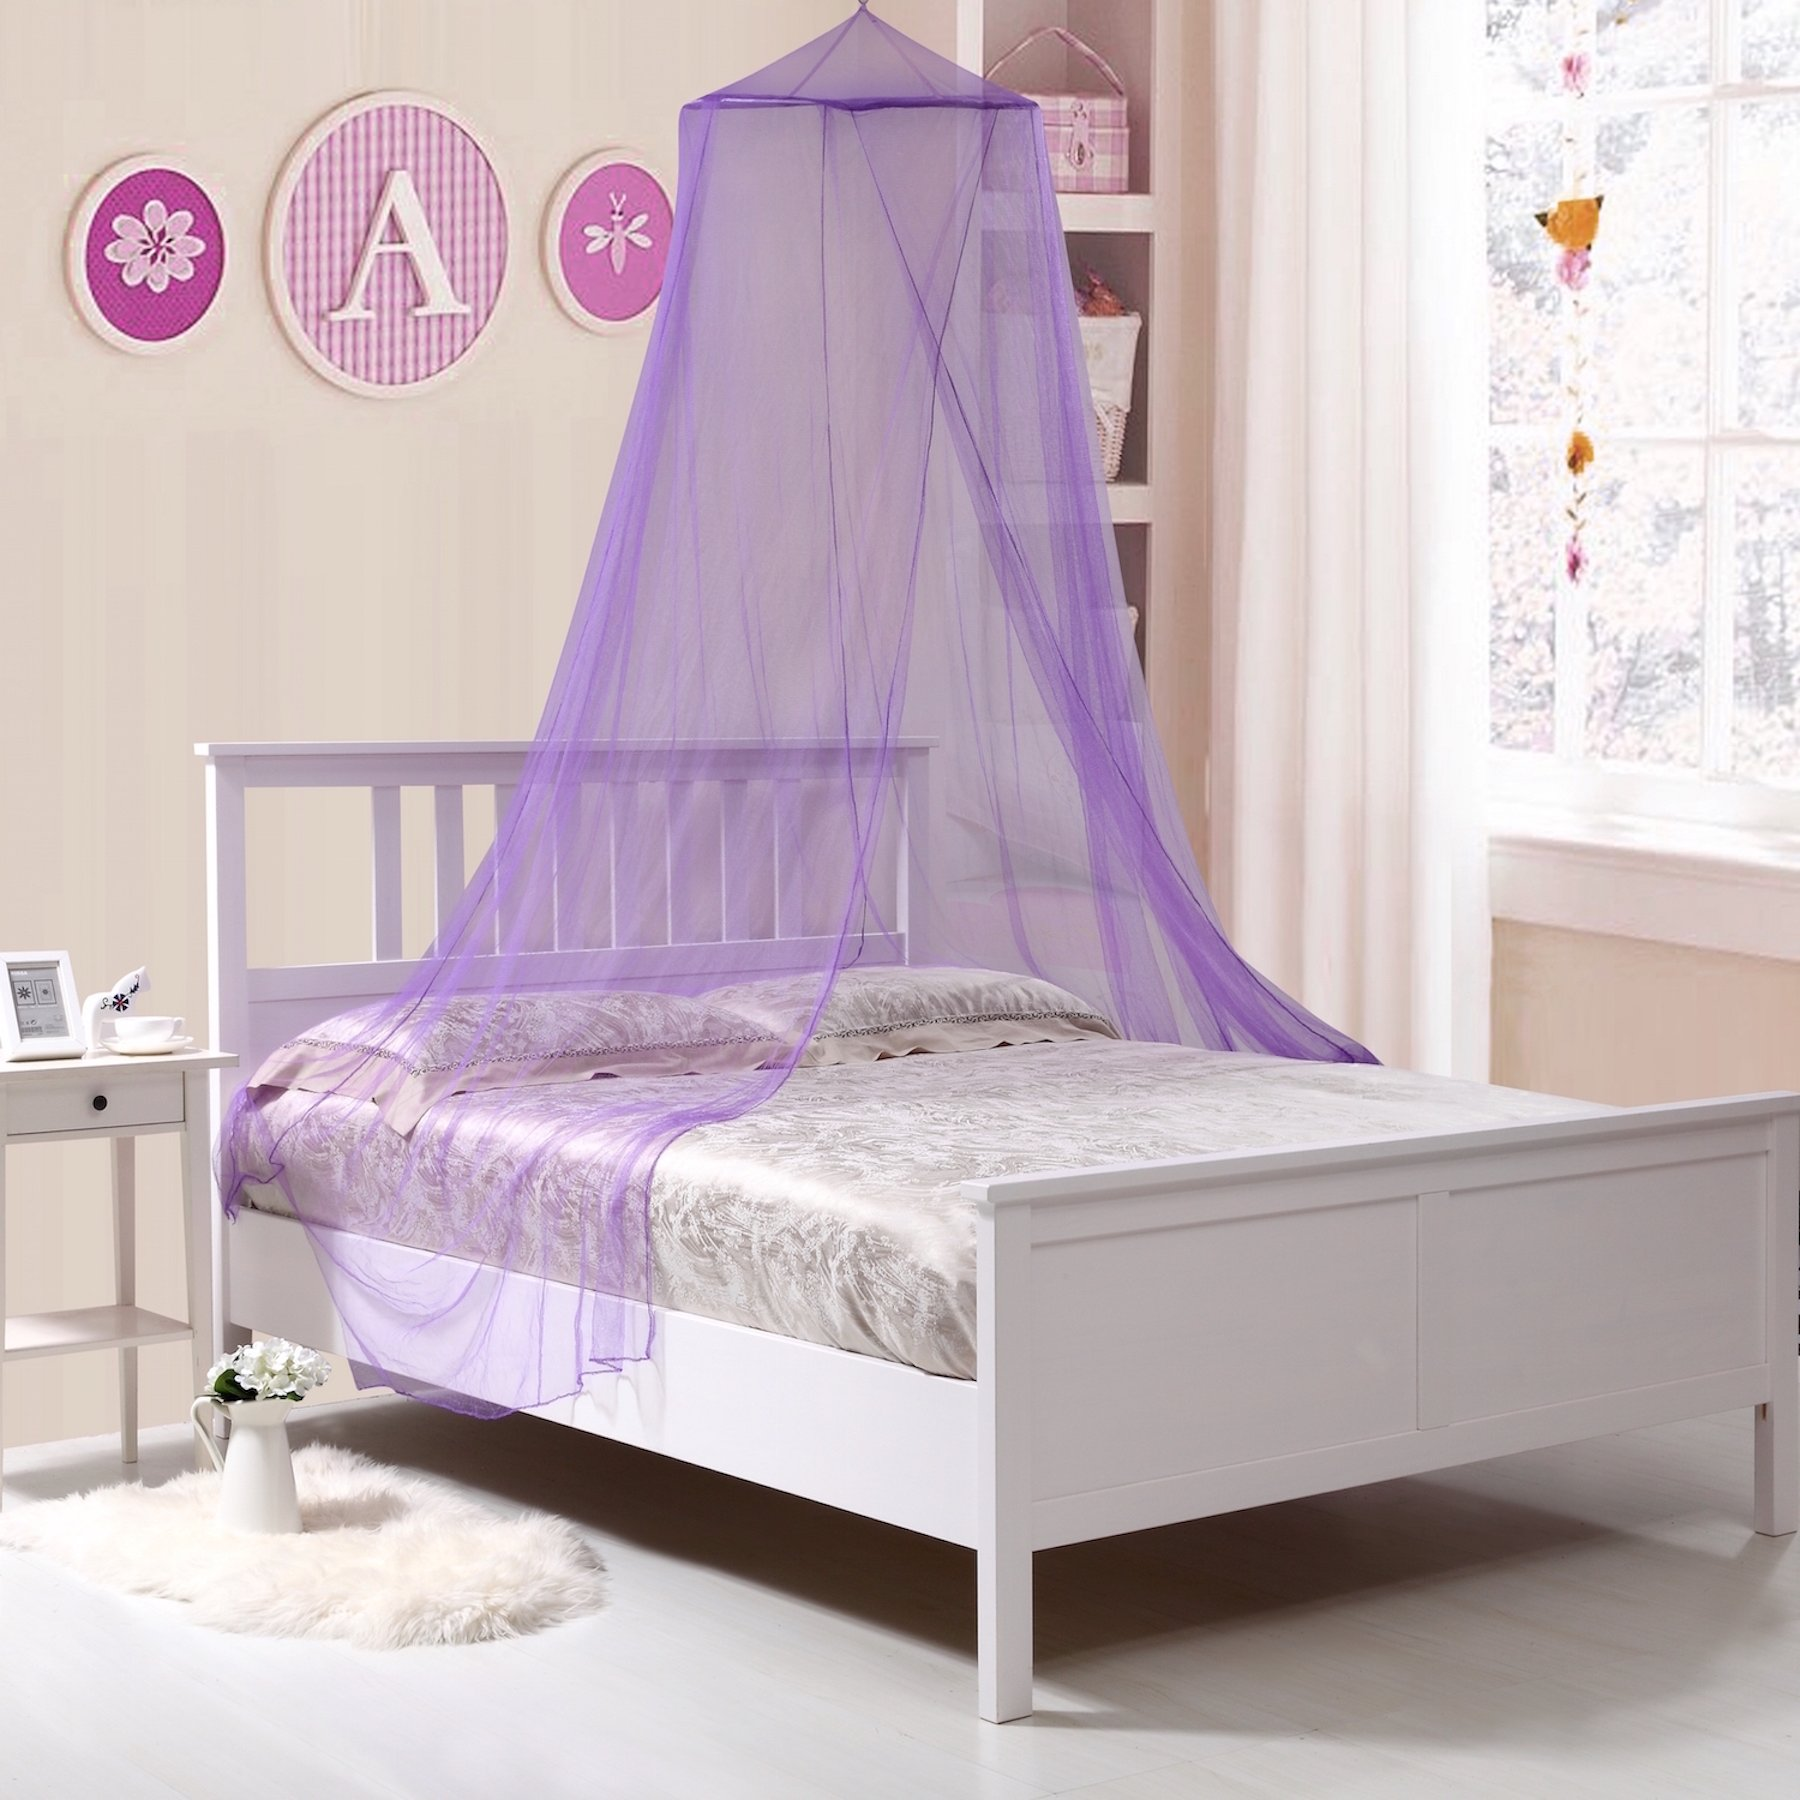 Fantasy Kids Kids Collapsible Wire Hoop Bed Canopy, One Size, Purple